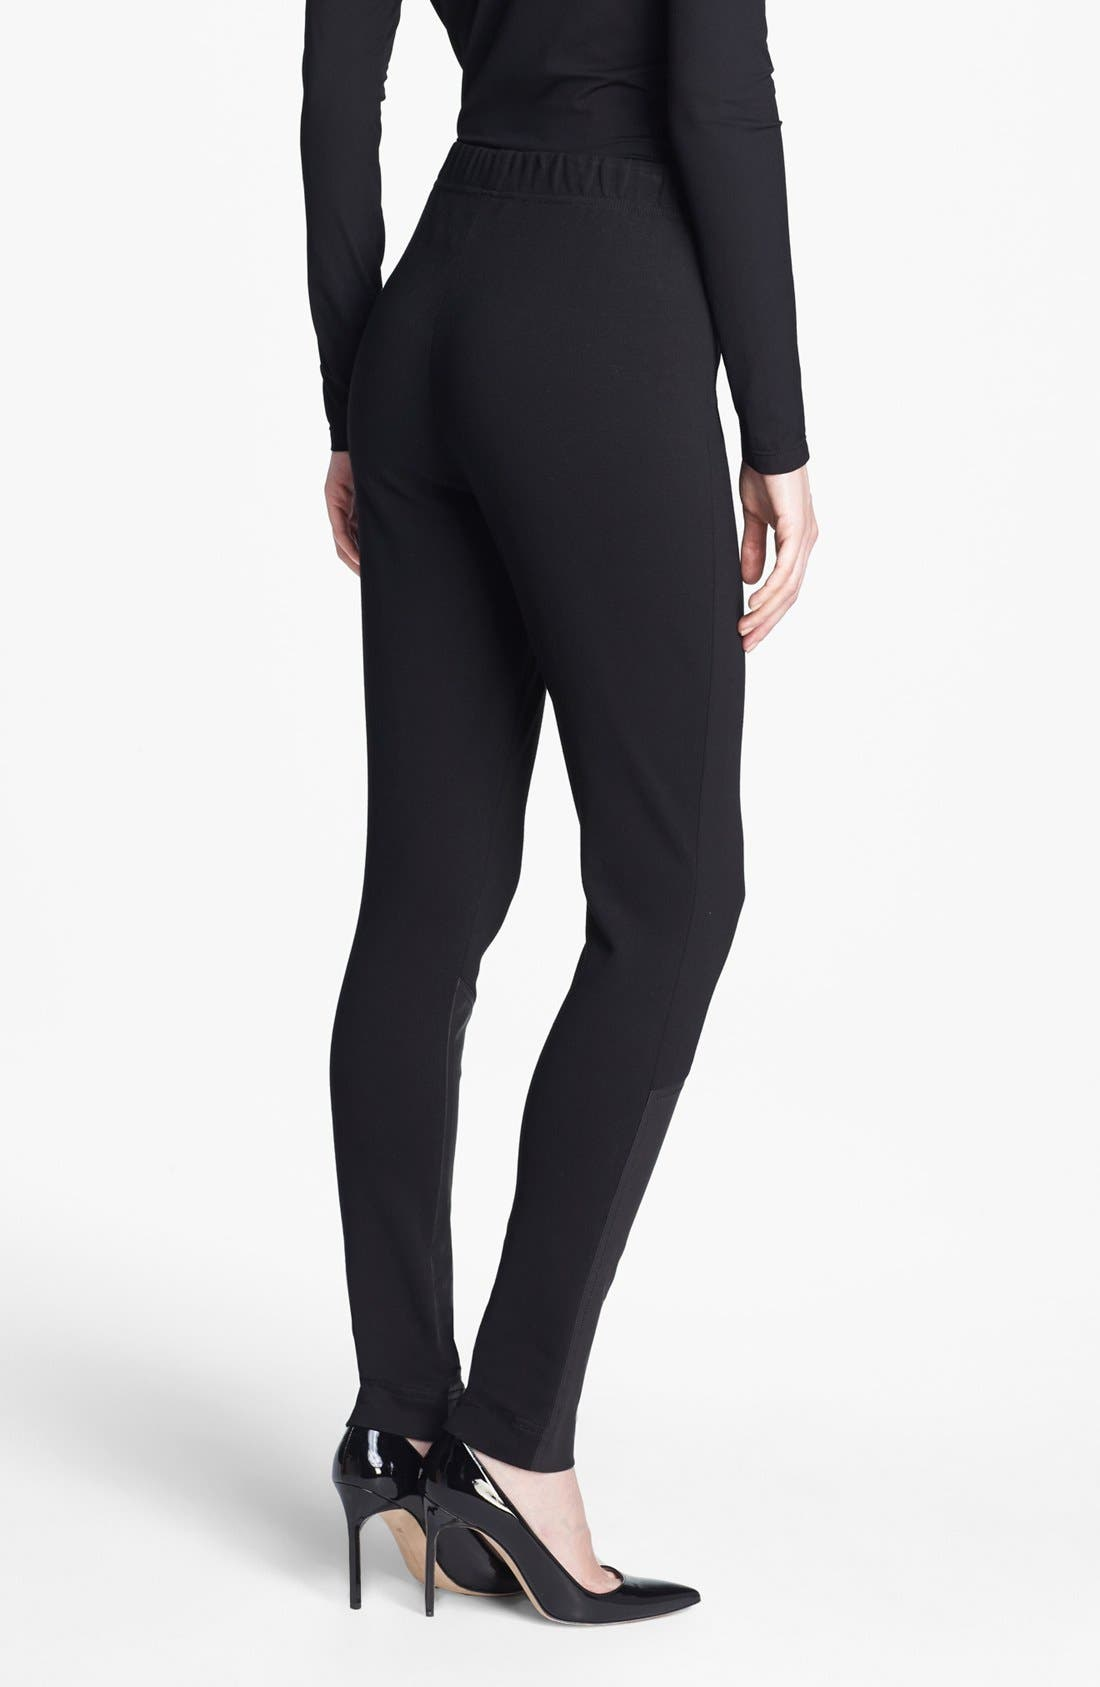 Alternate Image 3  - St. John Collection Leather Accent Ponte Knit Leggings